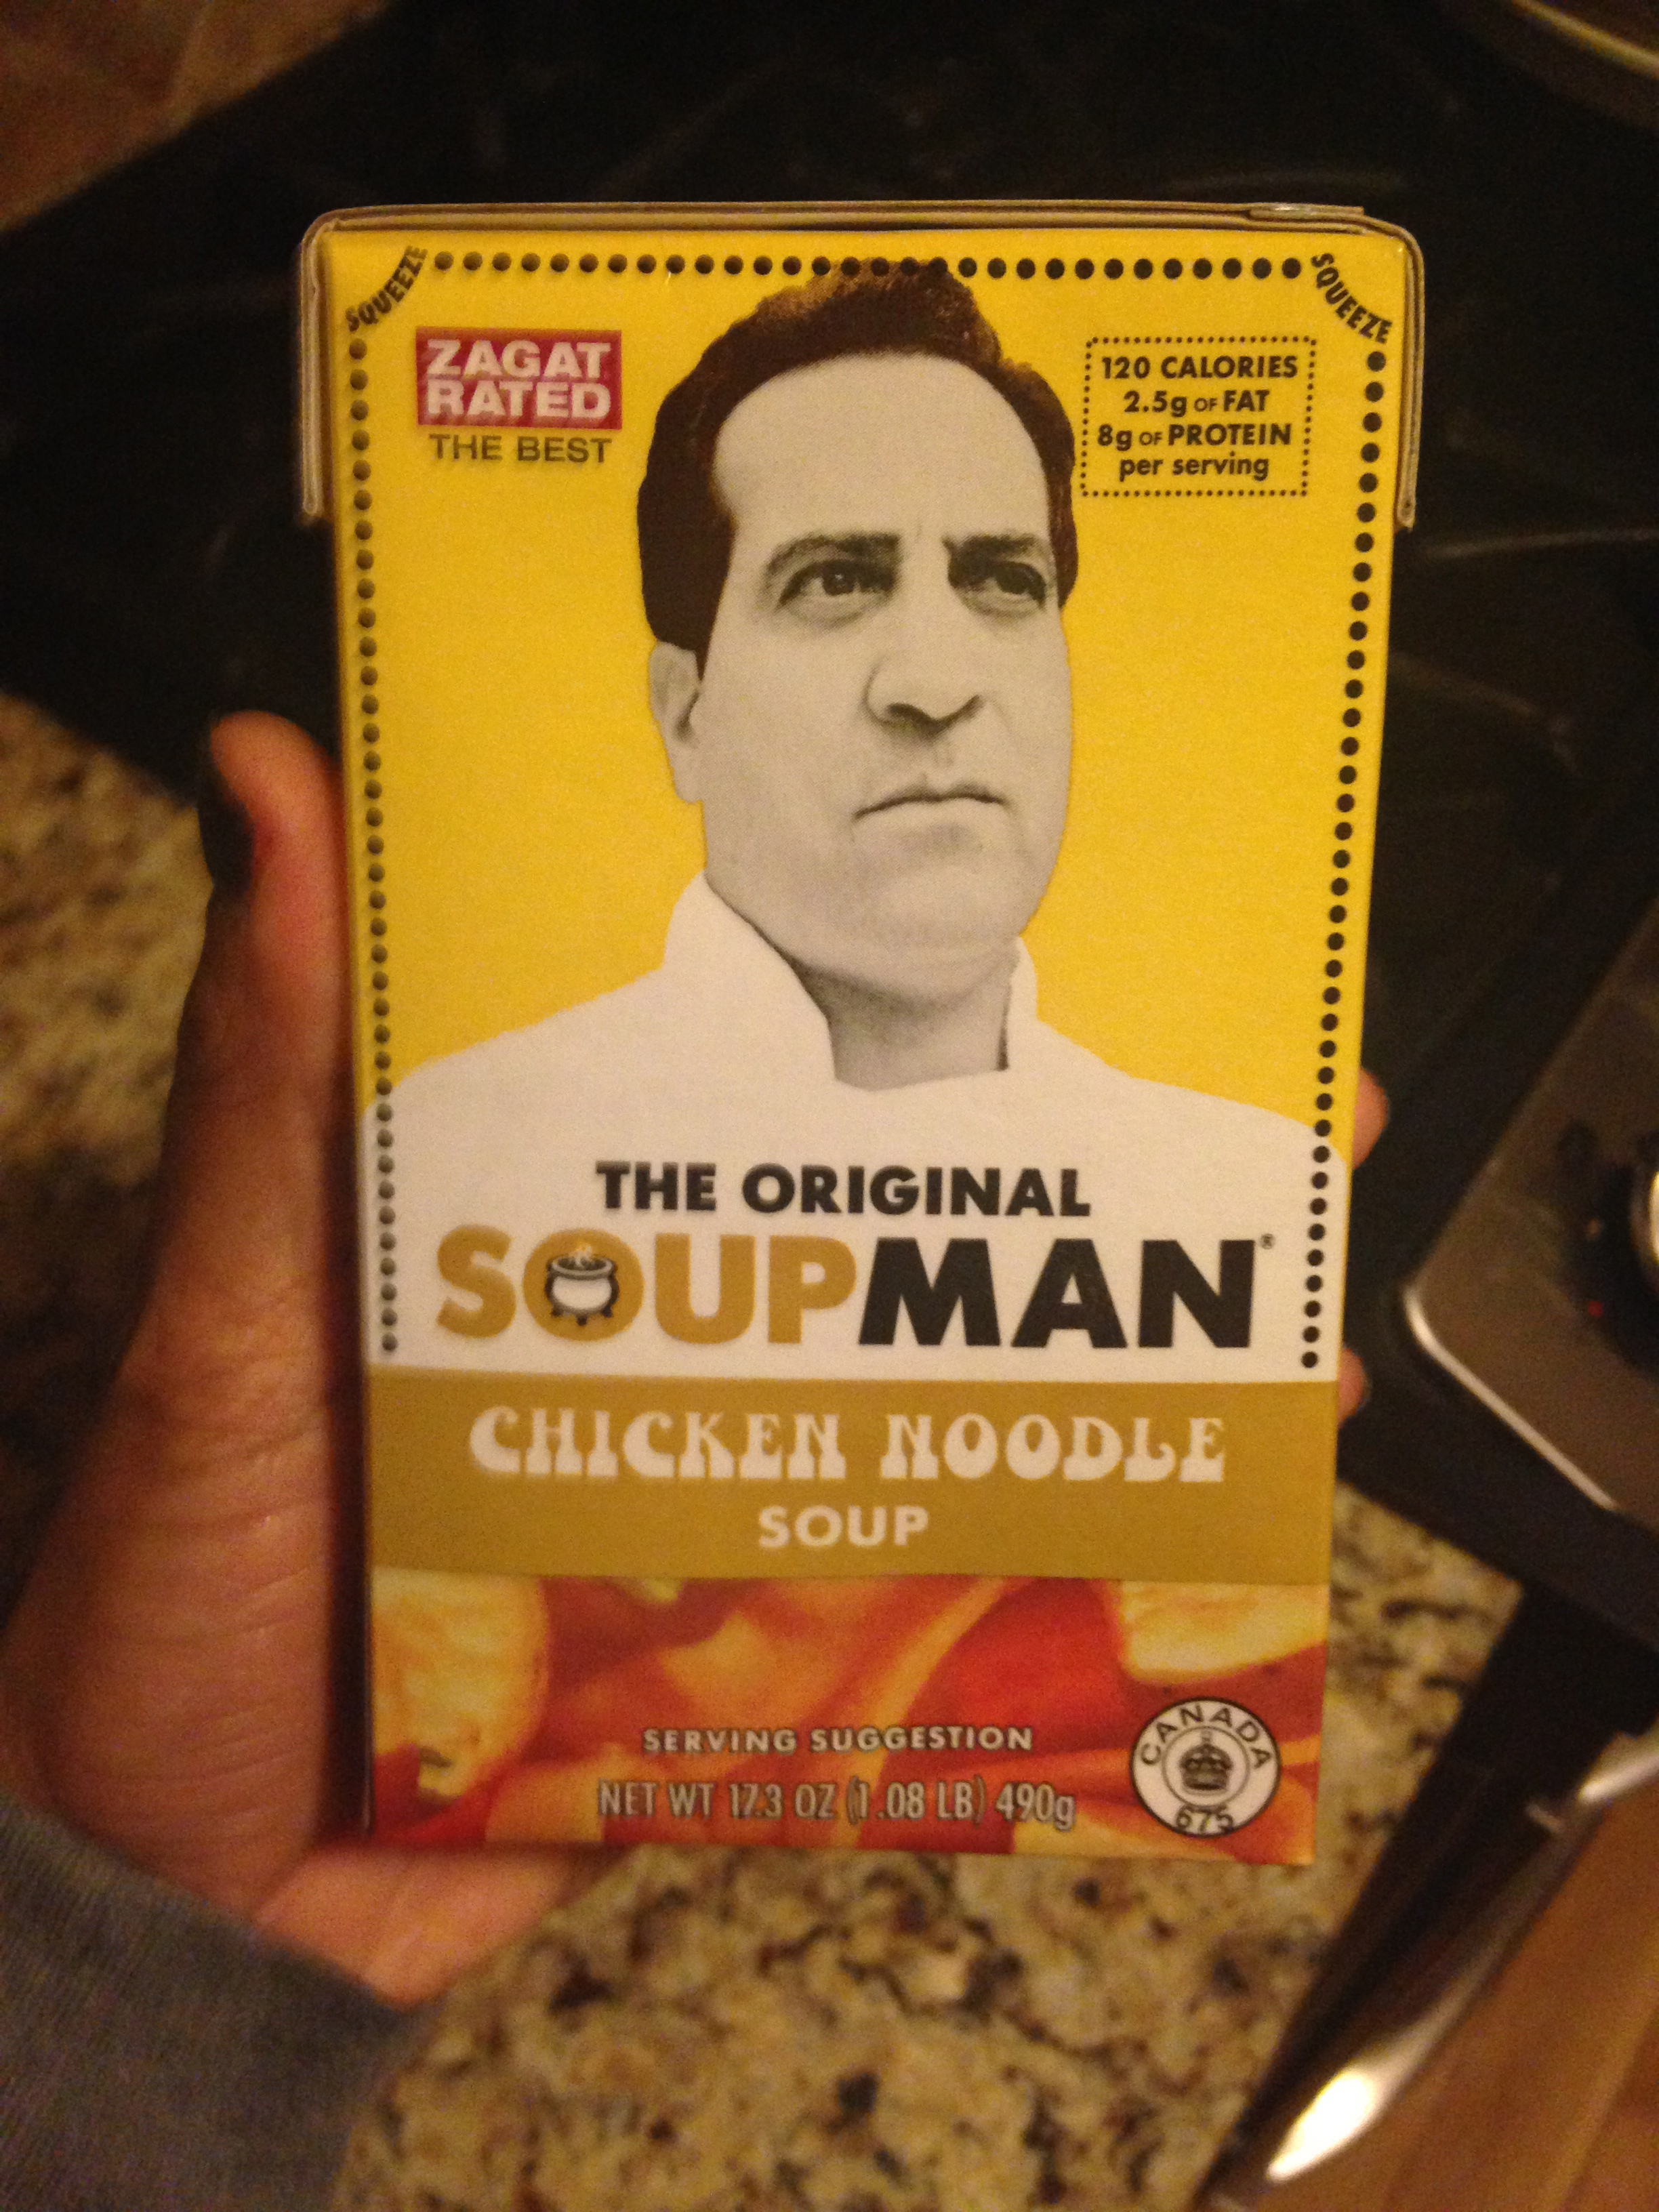 Original Soup Man review